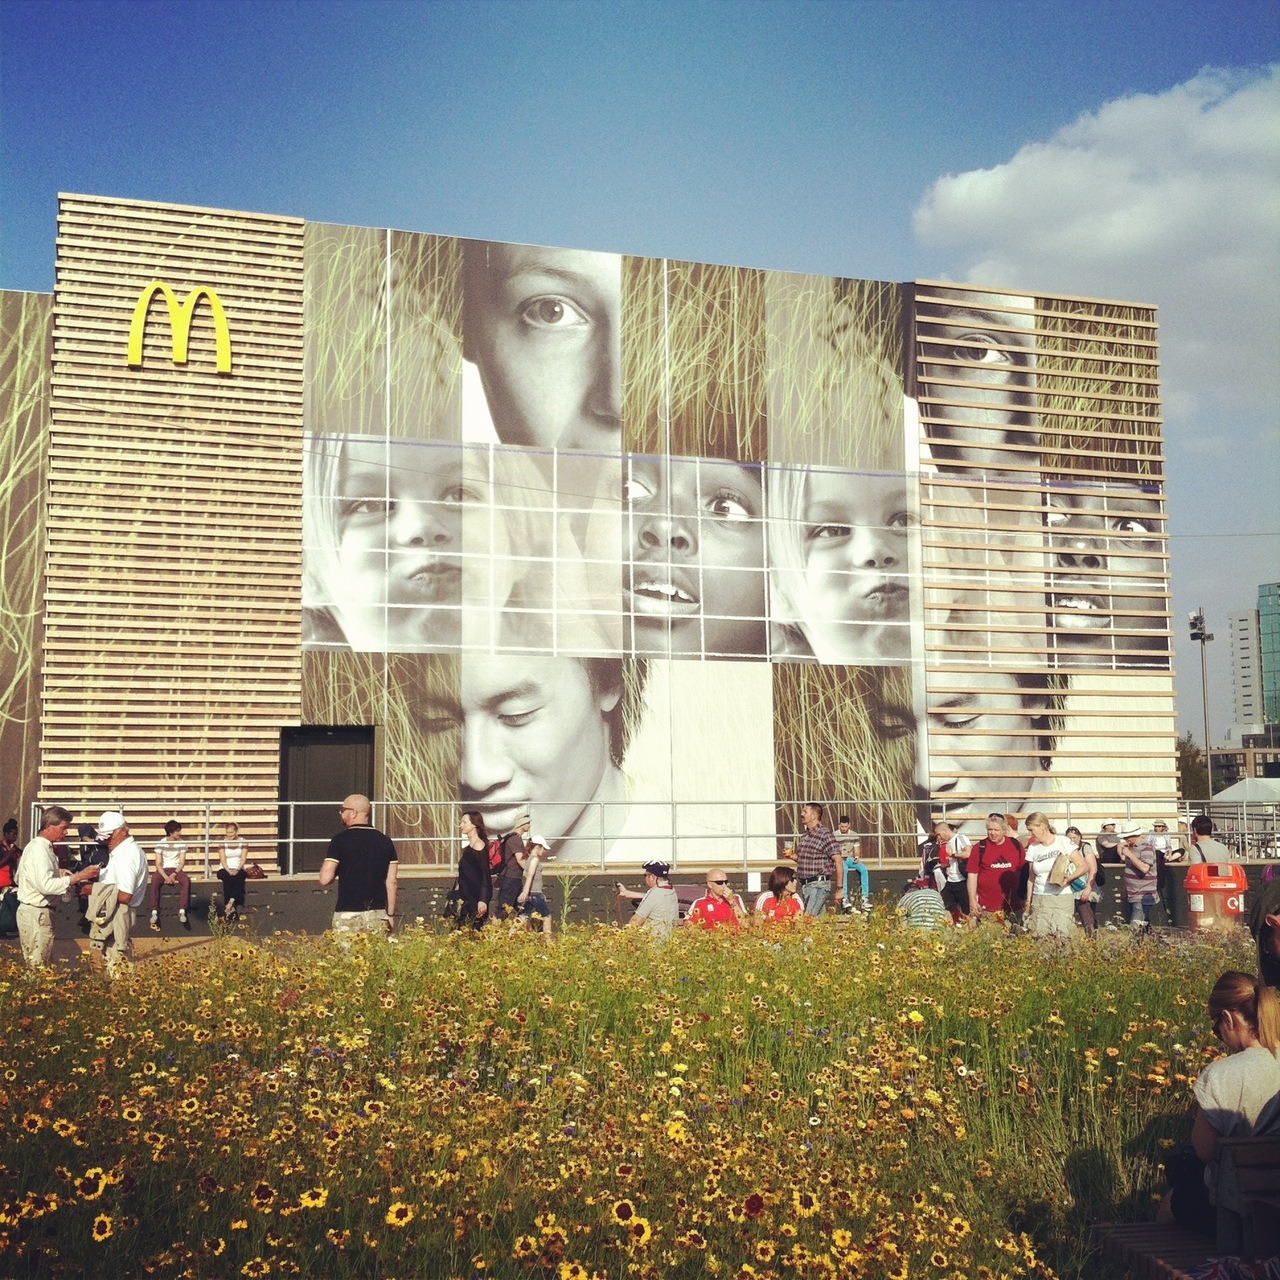 My friend Kate send me this photo from the Olympic McDonalds Do you THINK this is ME?? I cant tell hahah